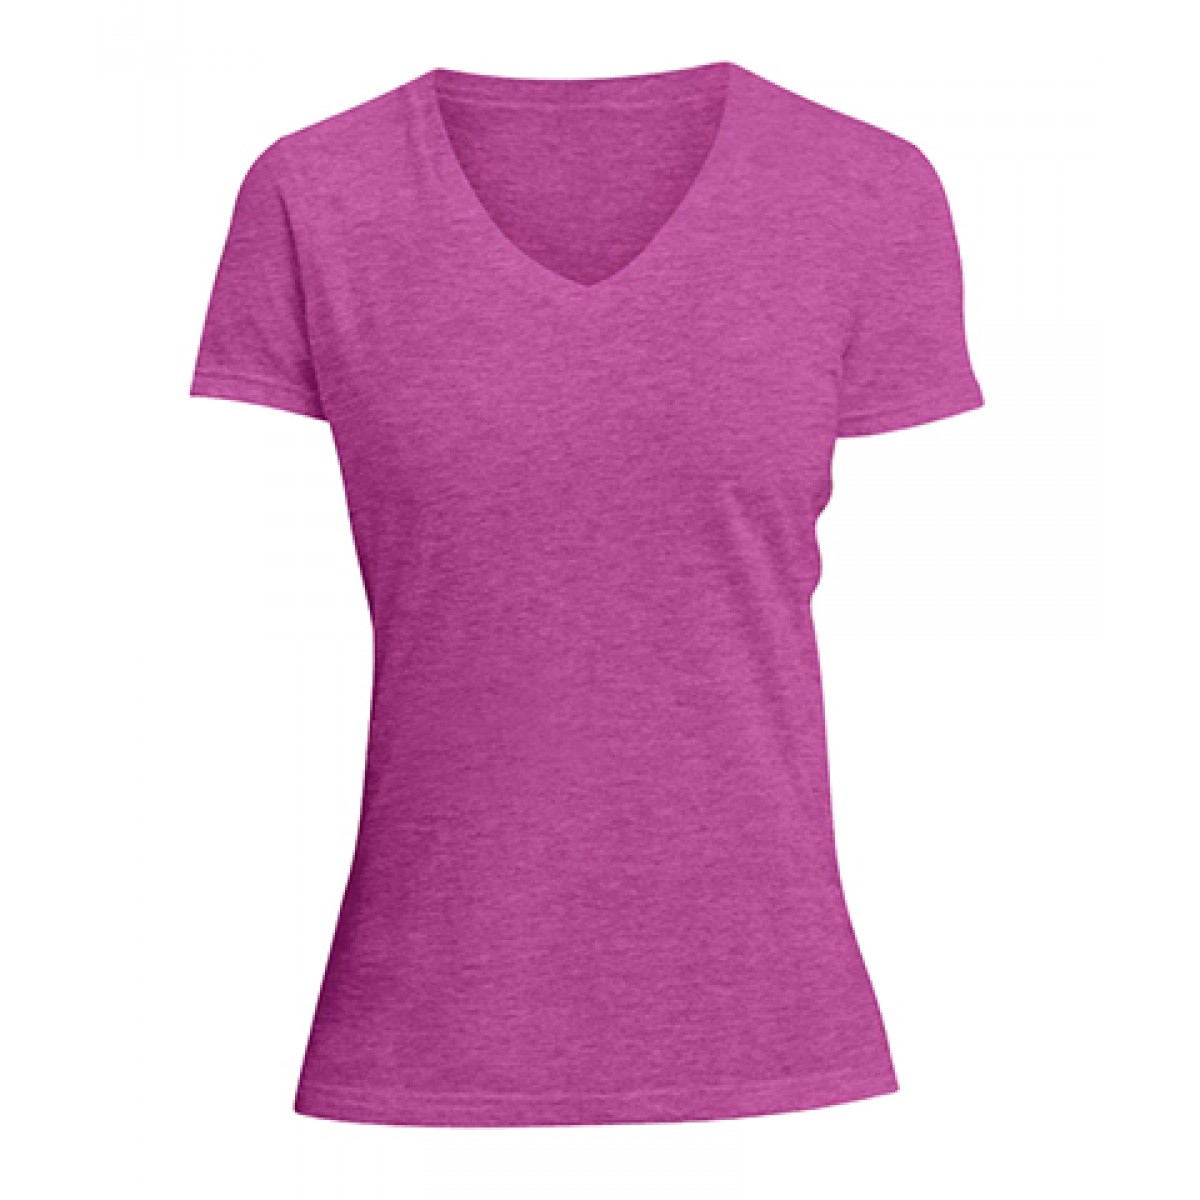 Ladies V-Neck Tee-Heathered Fuscia-2XL